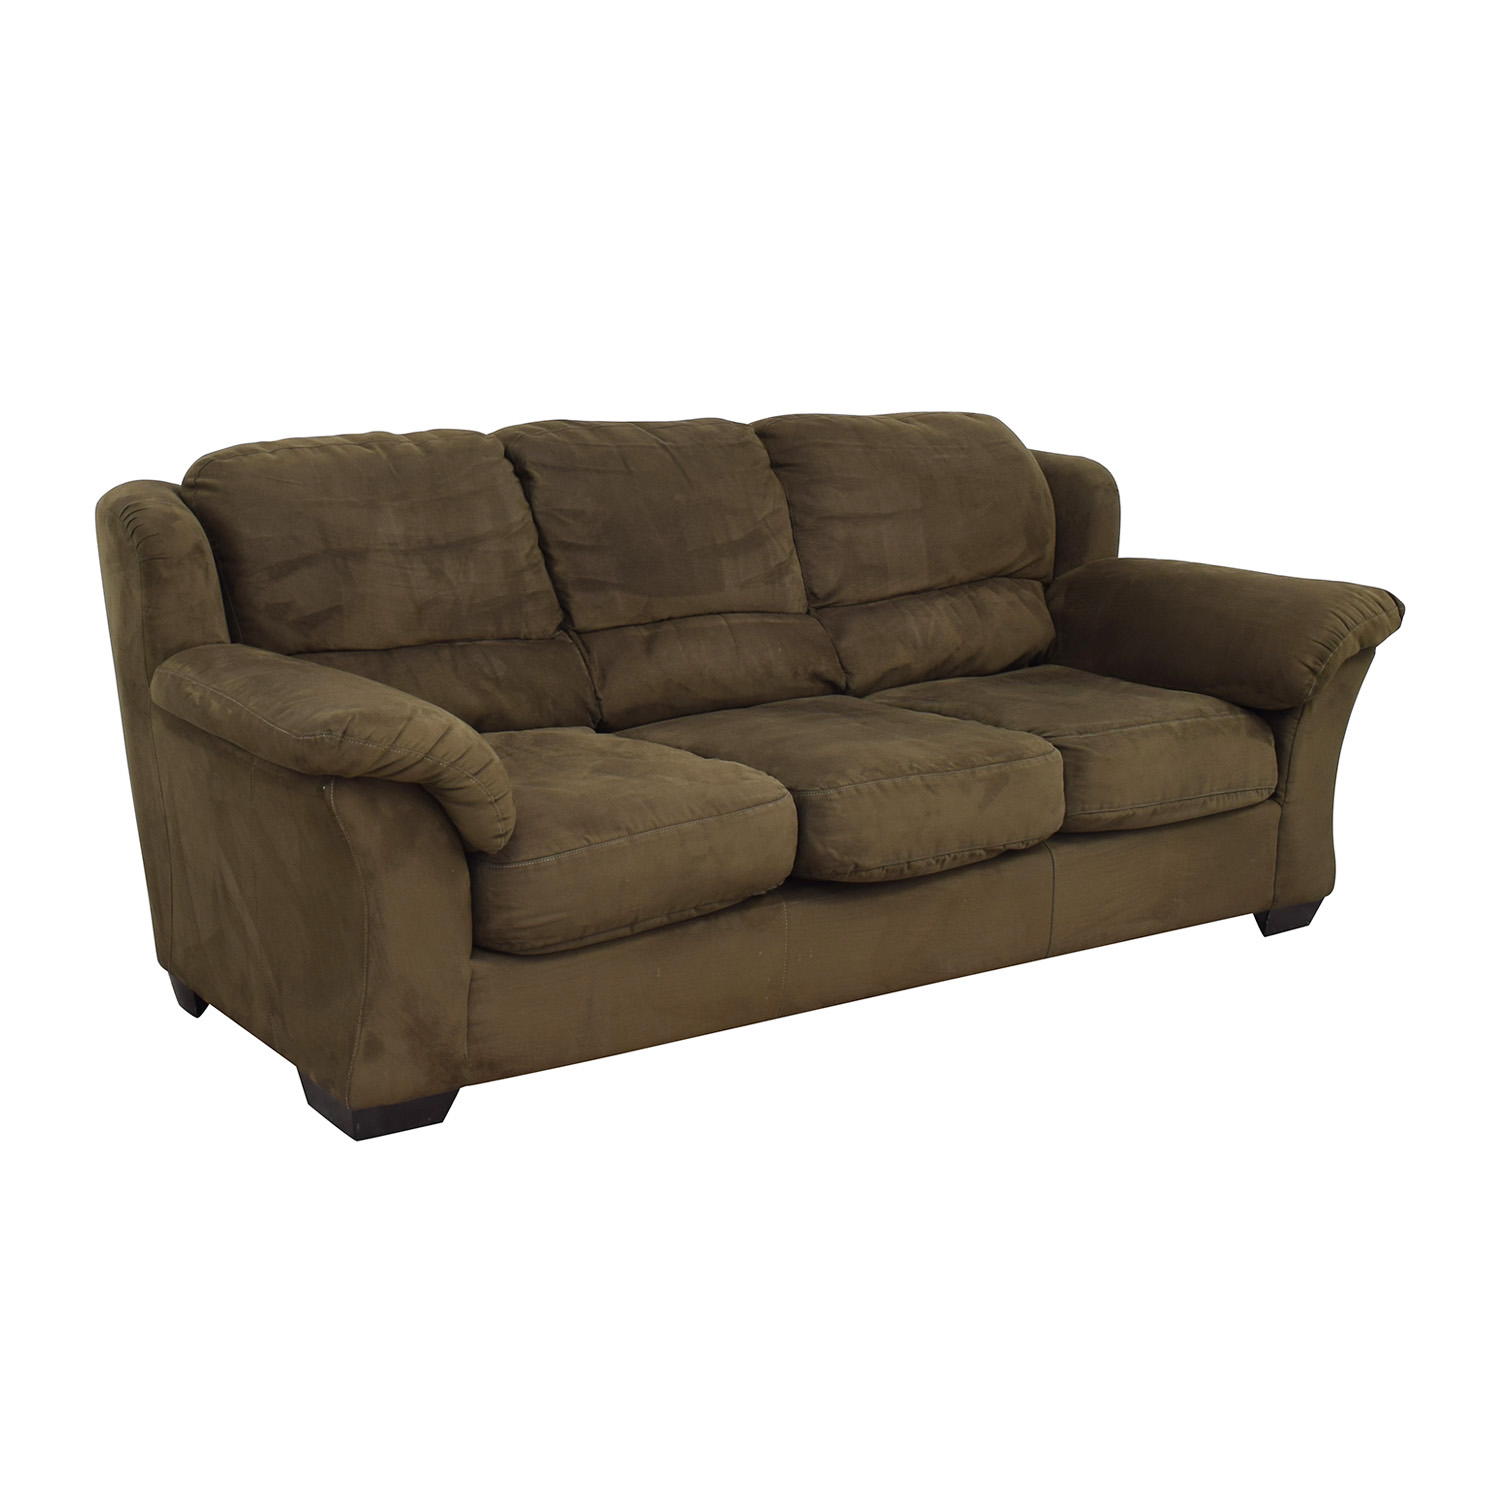 HM Richards Furniture HM Richards Furniture Dark Green Couch second hand